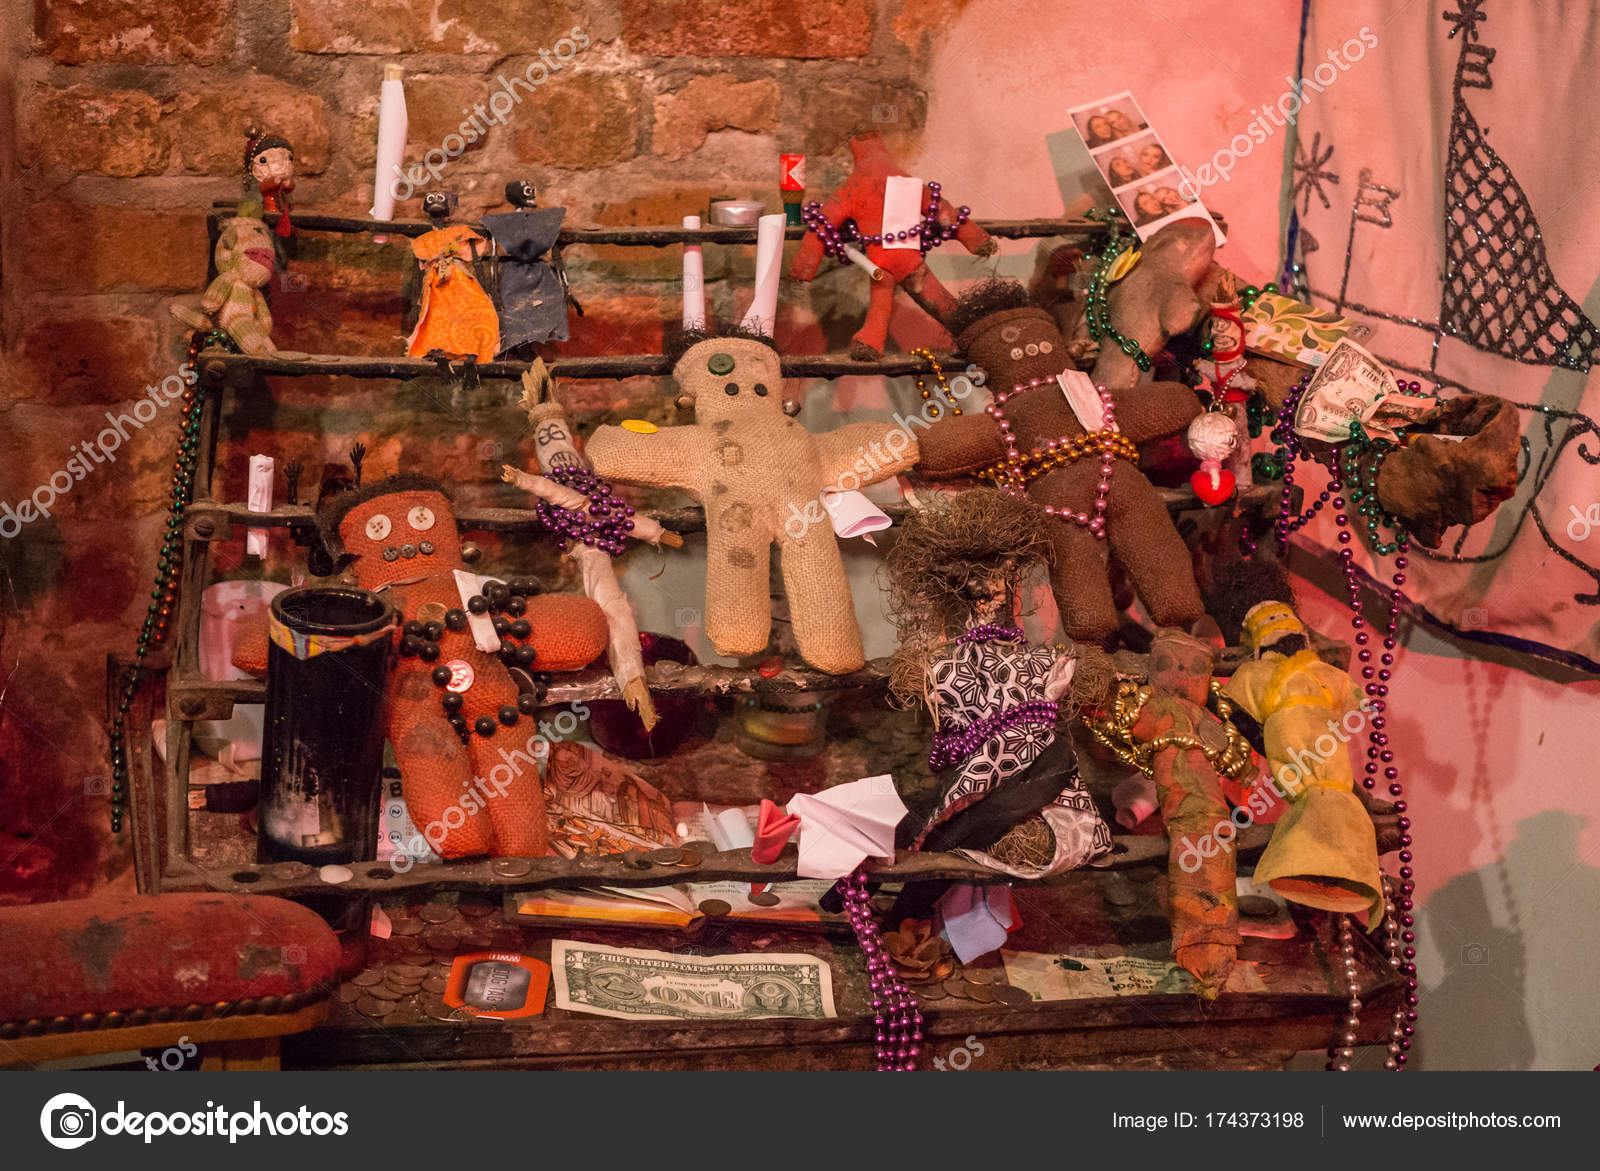 Ritual attributes of voodoo religion  Voodoo dolls and